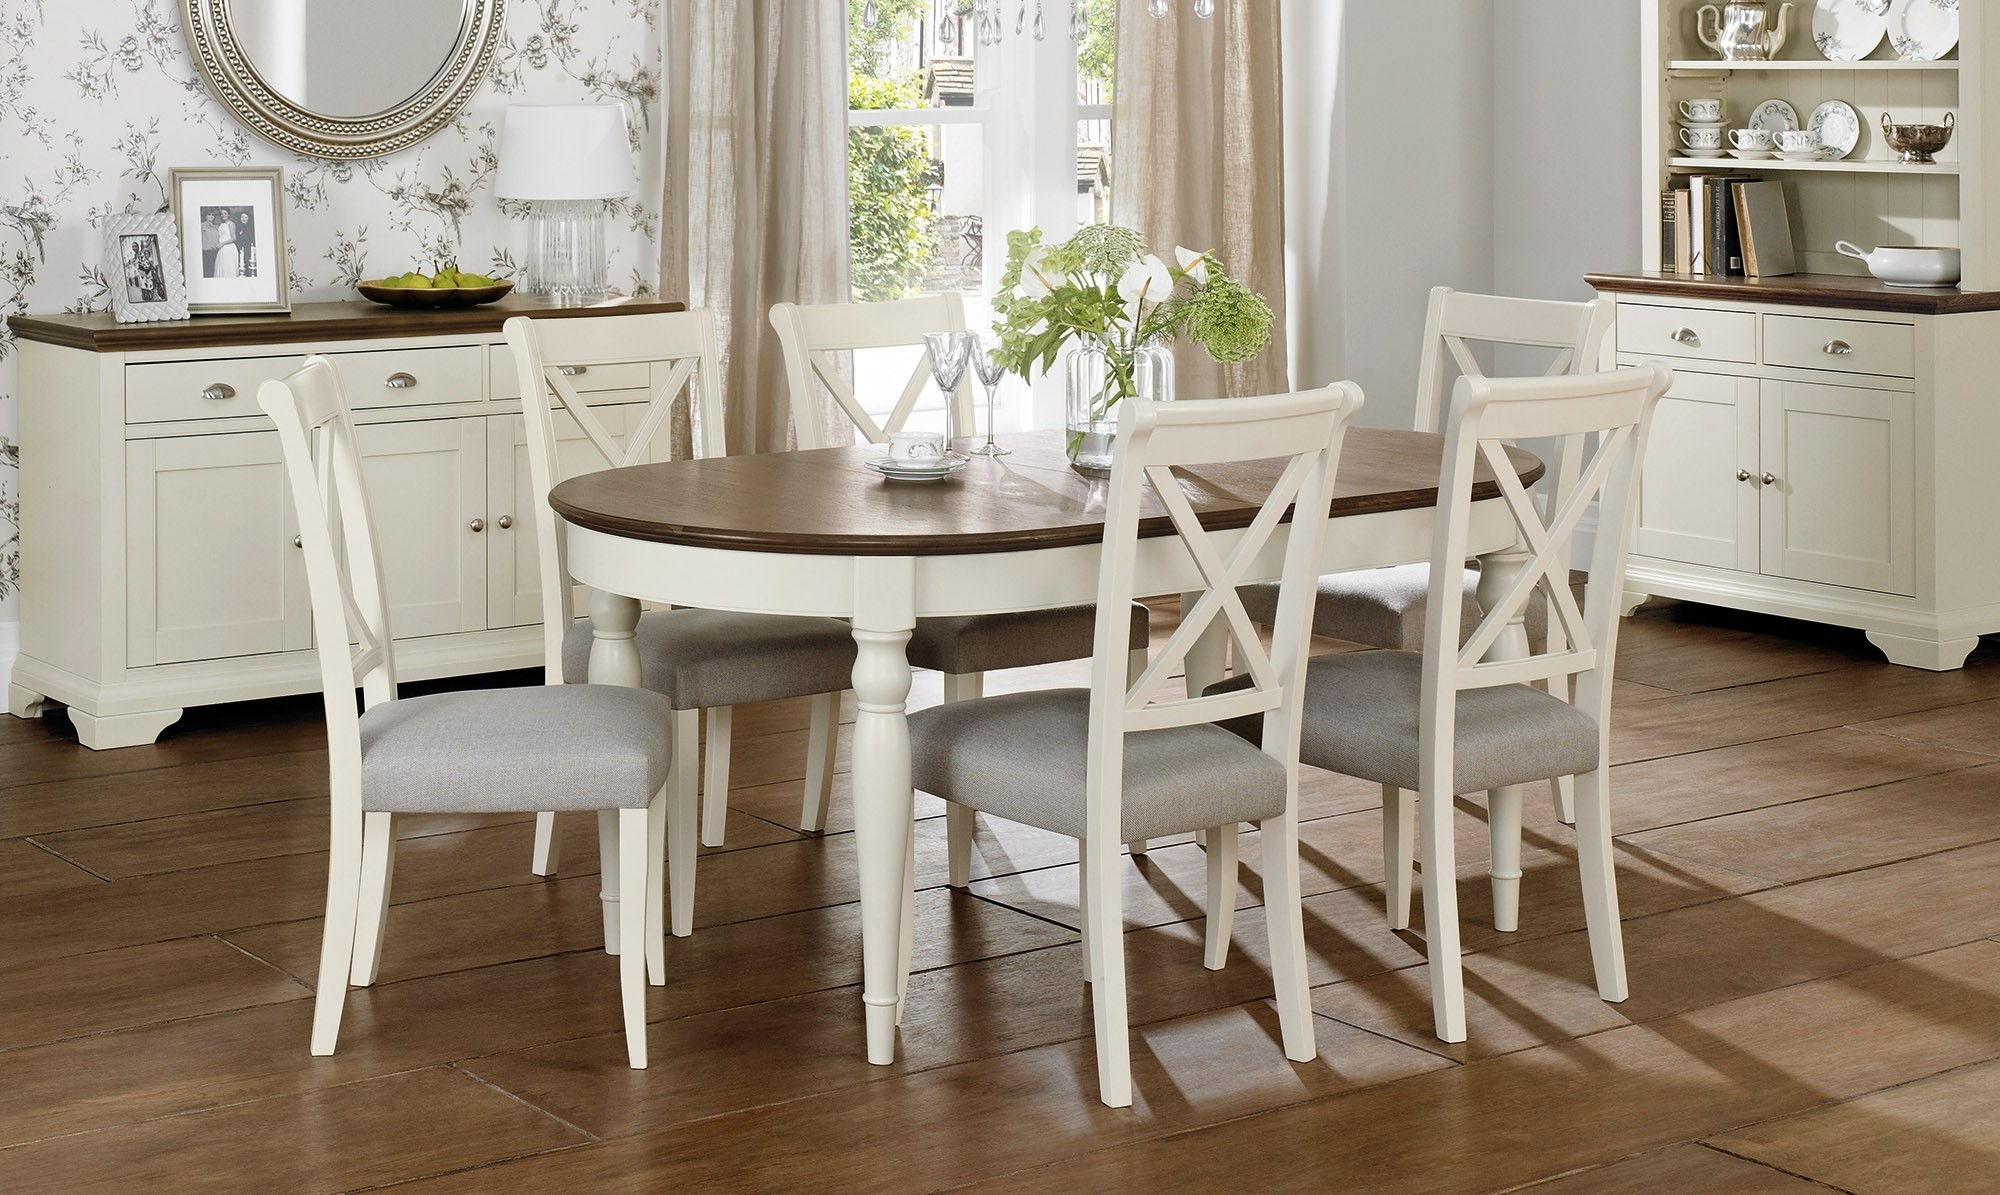 Extending Dining Tables Sets With Famous Oval Extending Dining Table Sets • Table Setting Design (View 10 of 25)